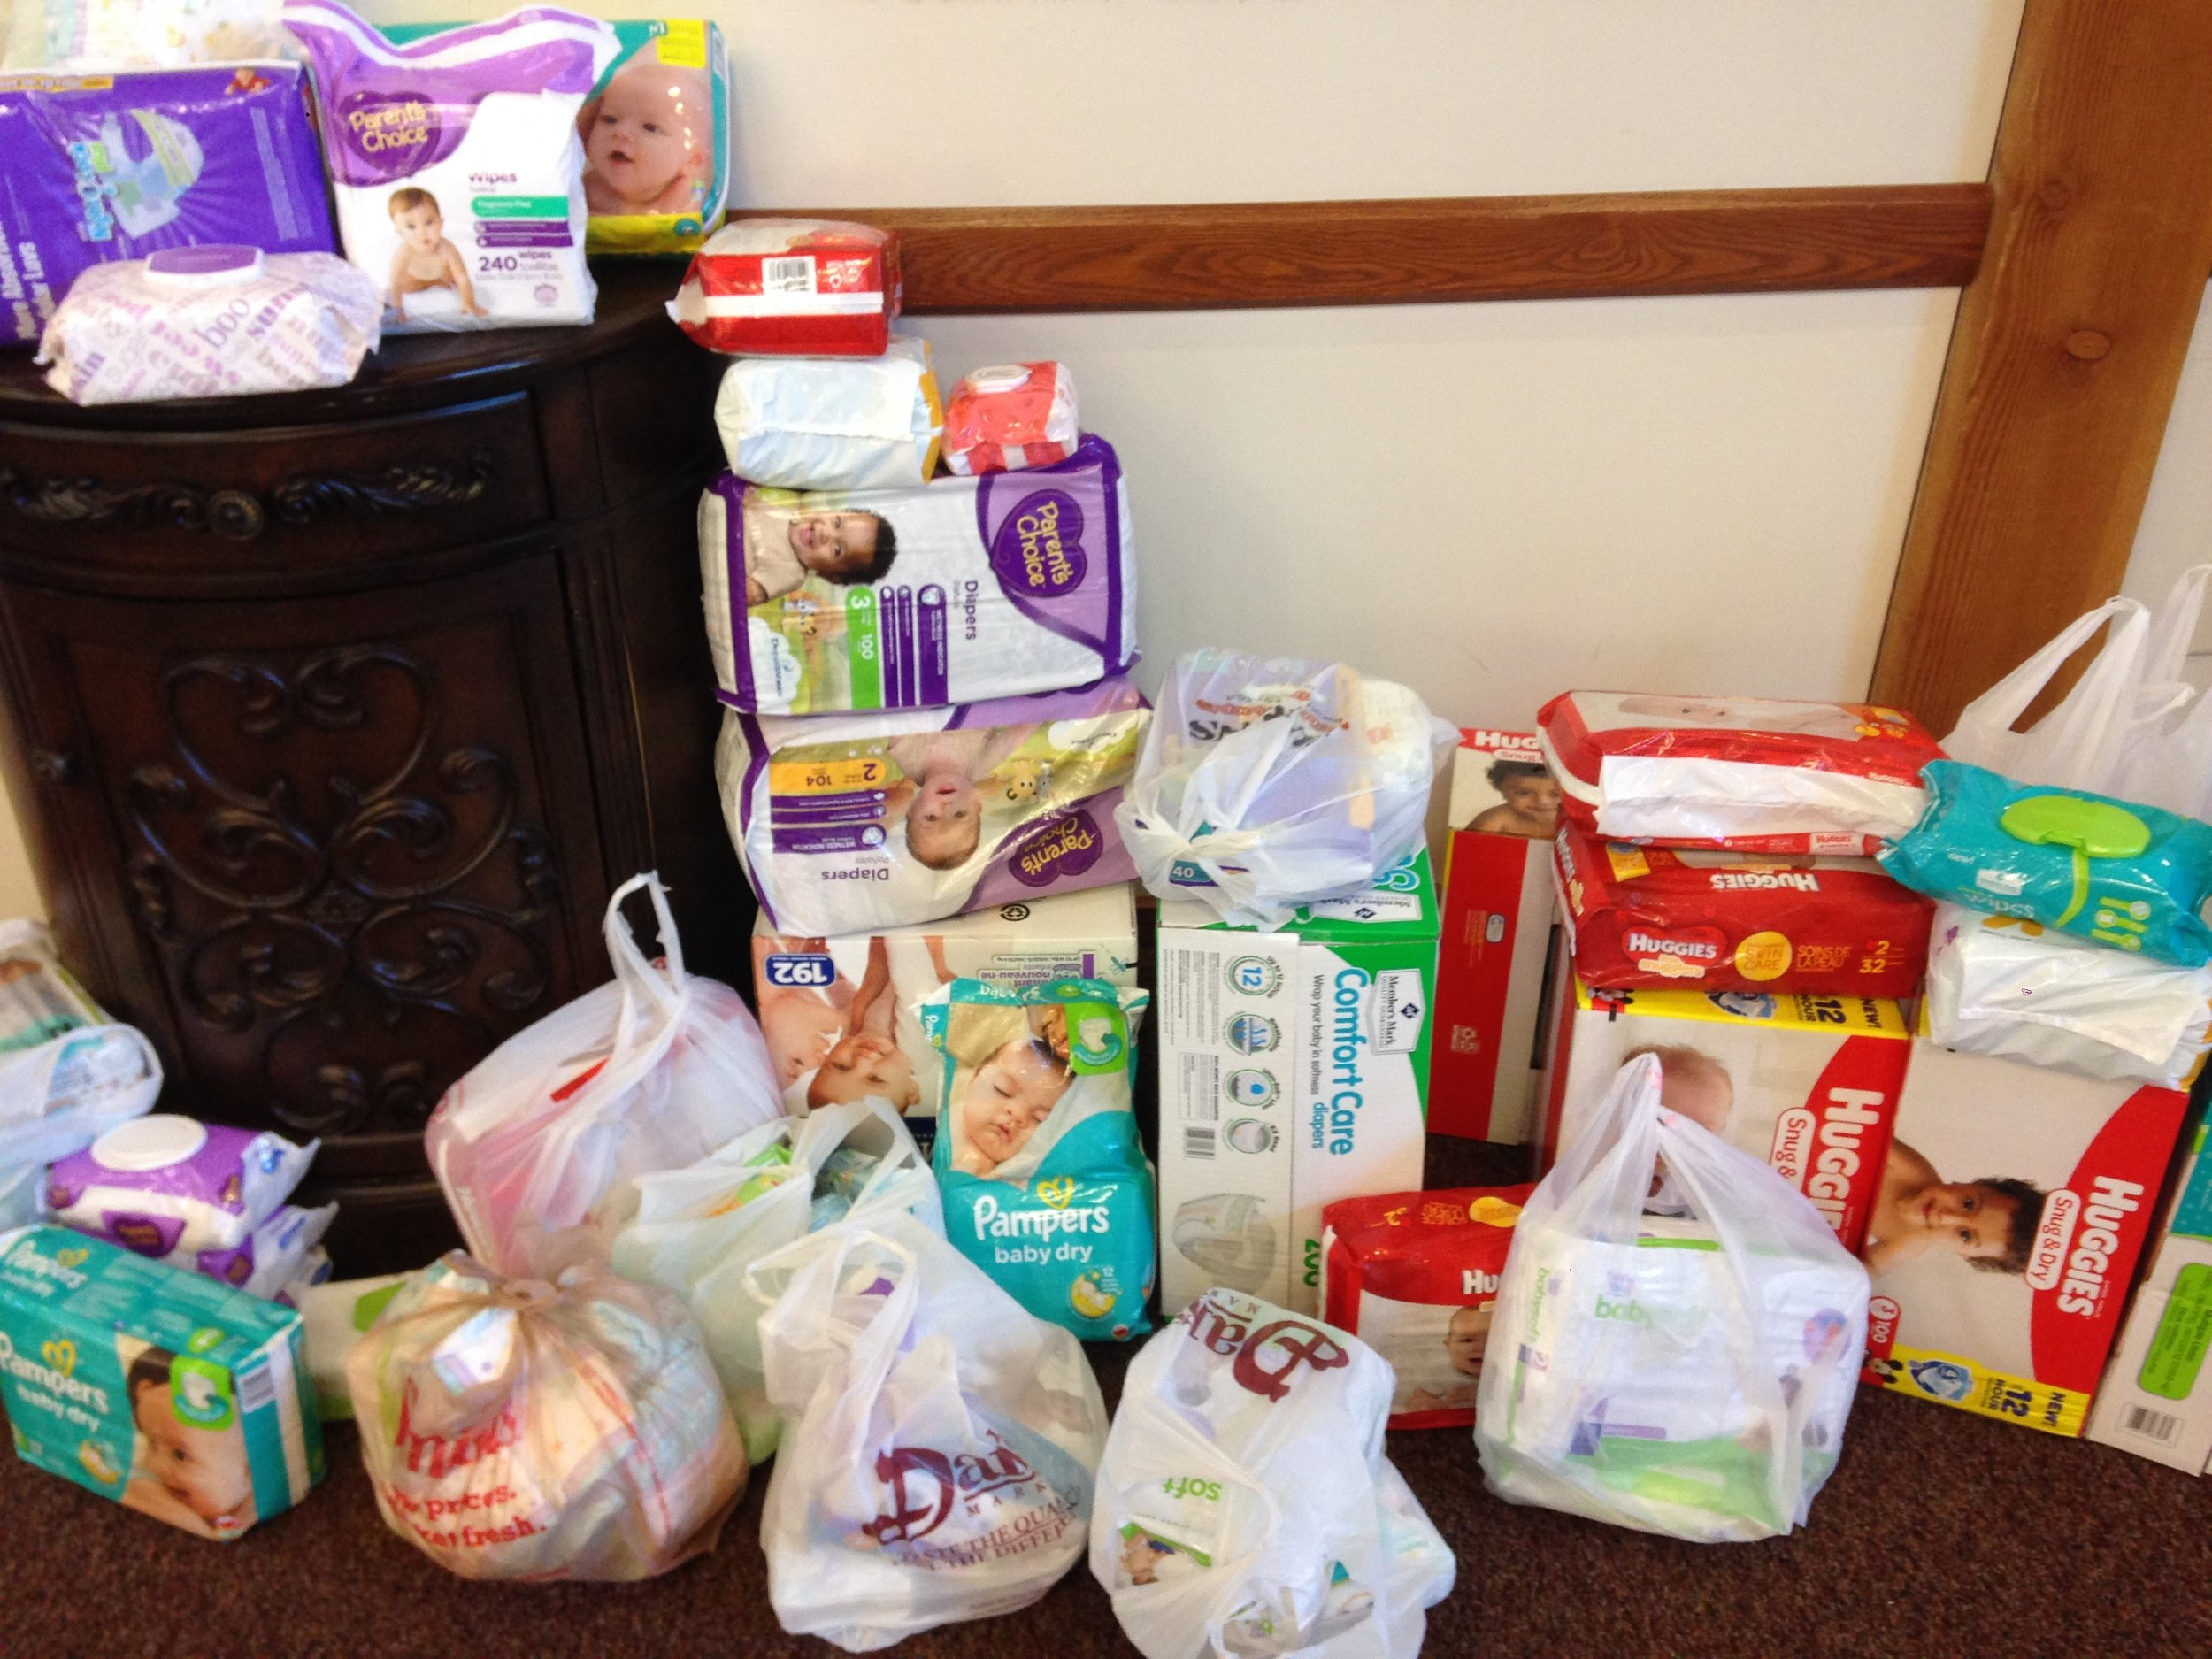 Donations were gathered at our 2017 BYGA luncheon for the Crisis Nursery in Midvale.